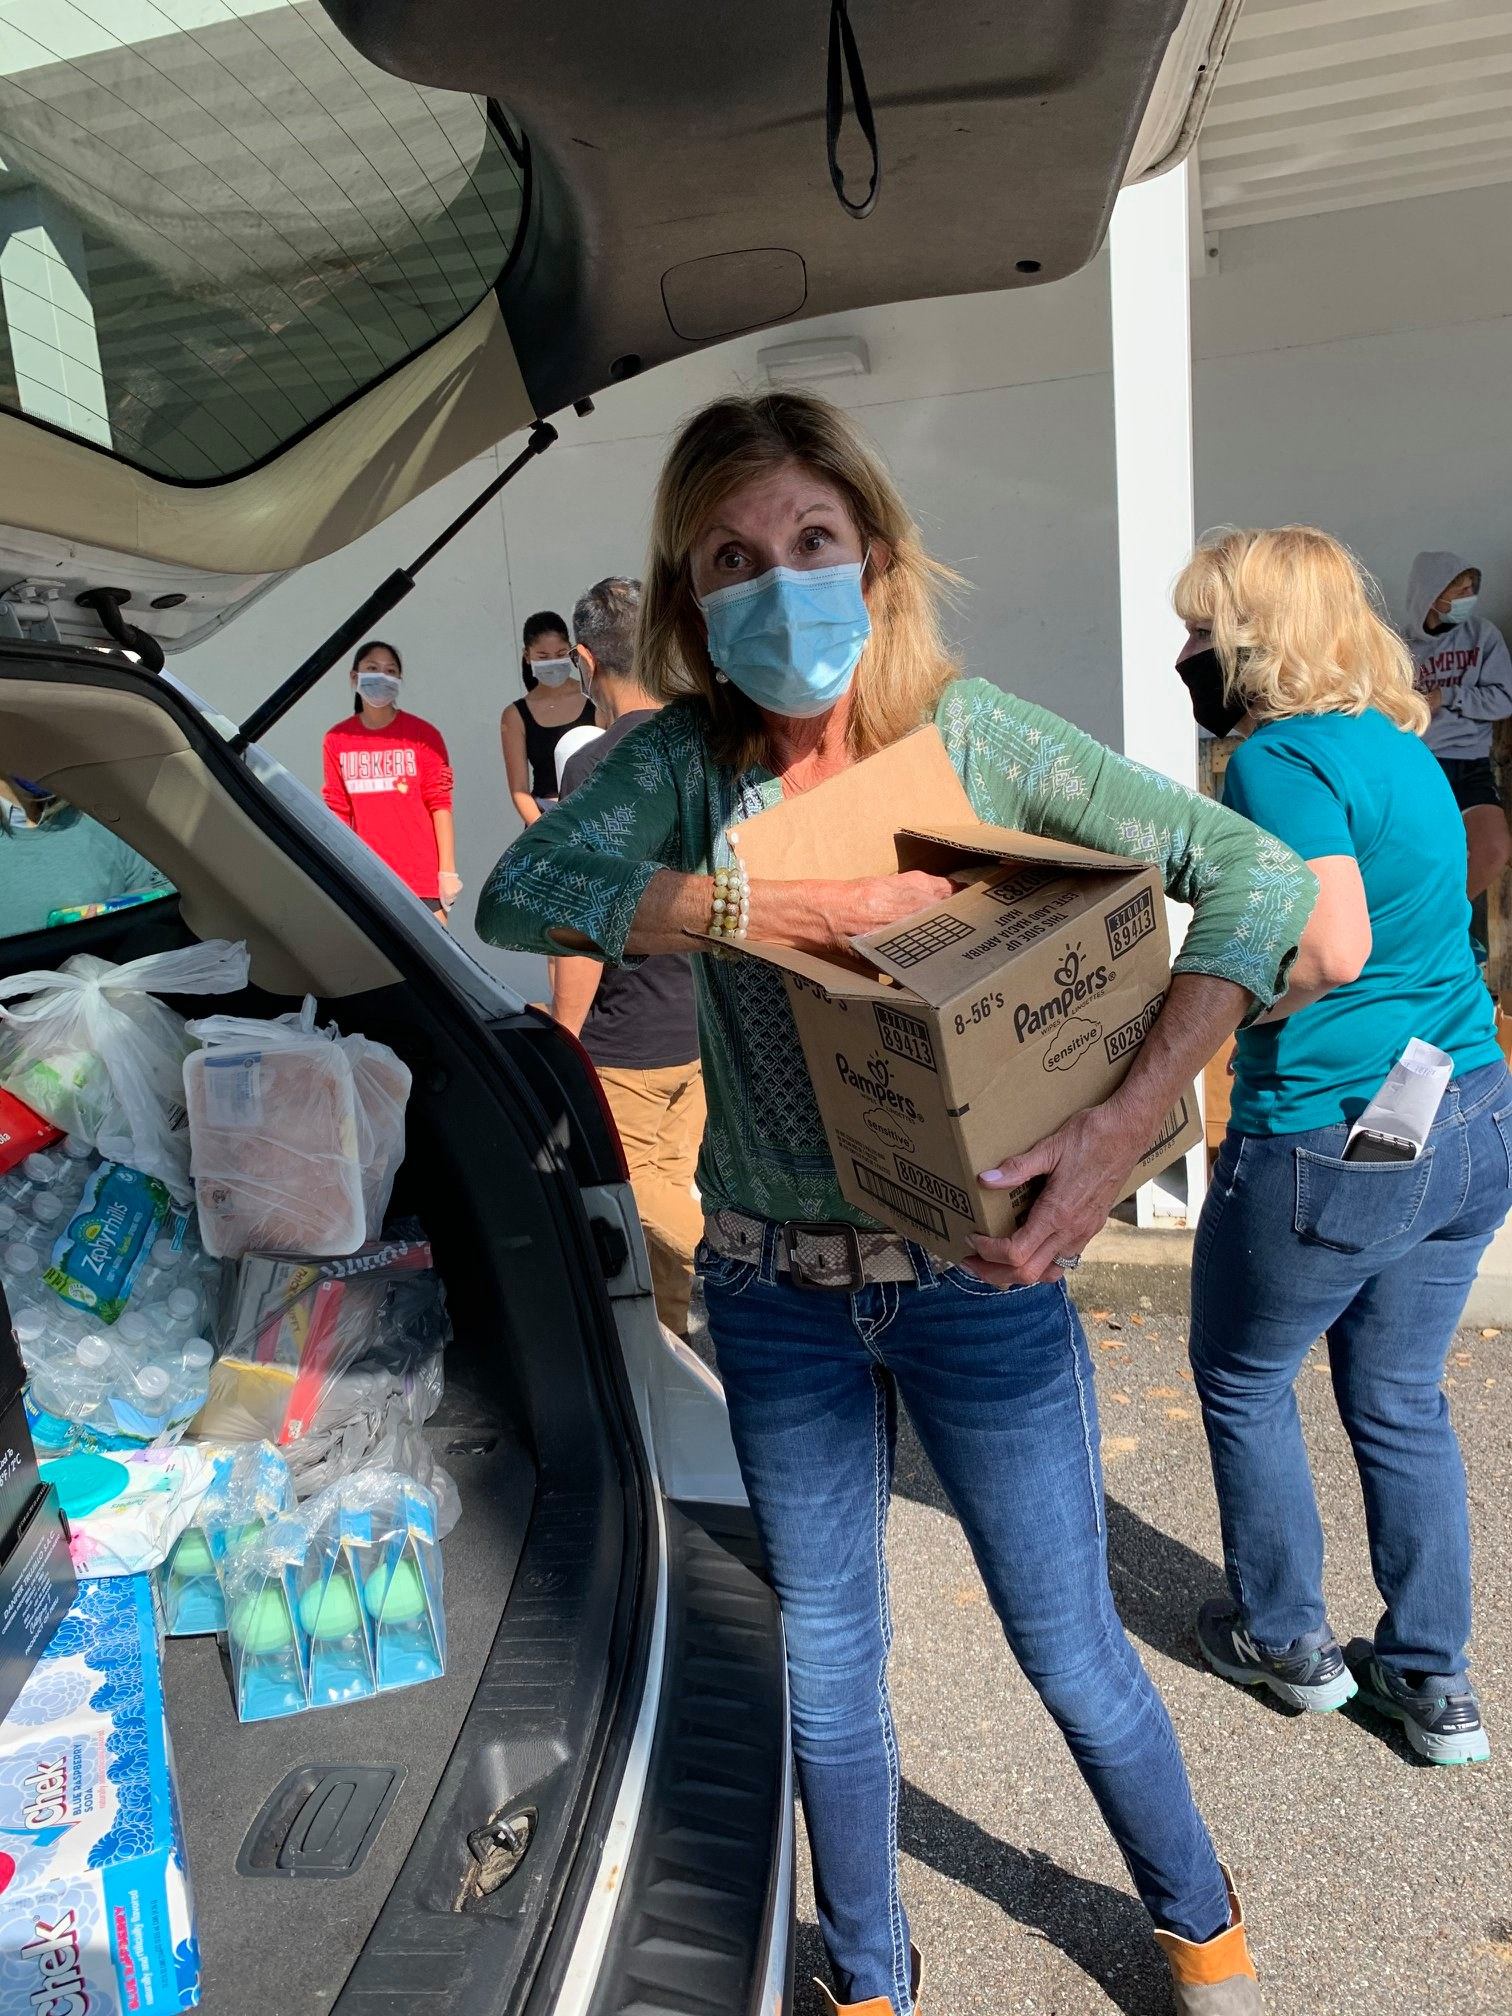 Packing a Car with Food Drop Items